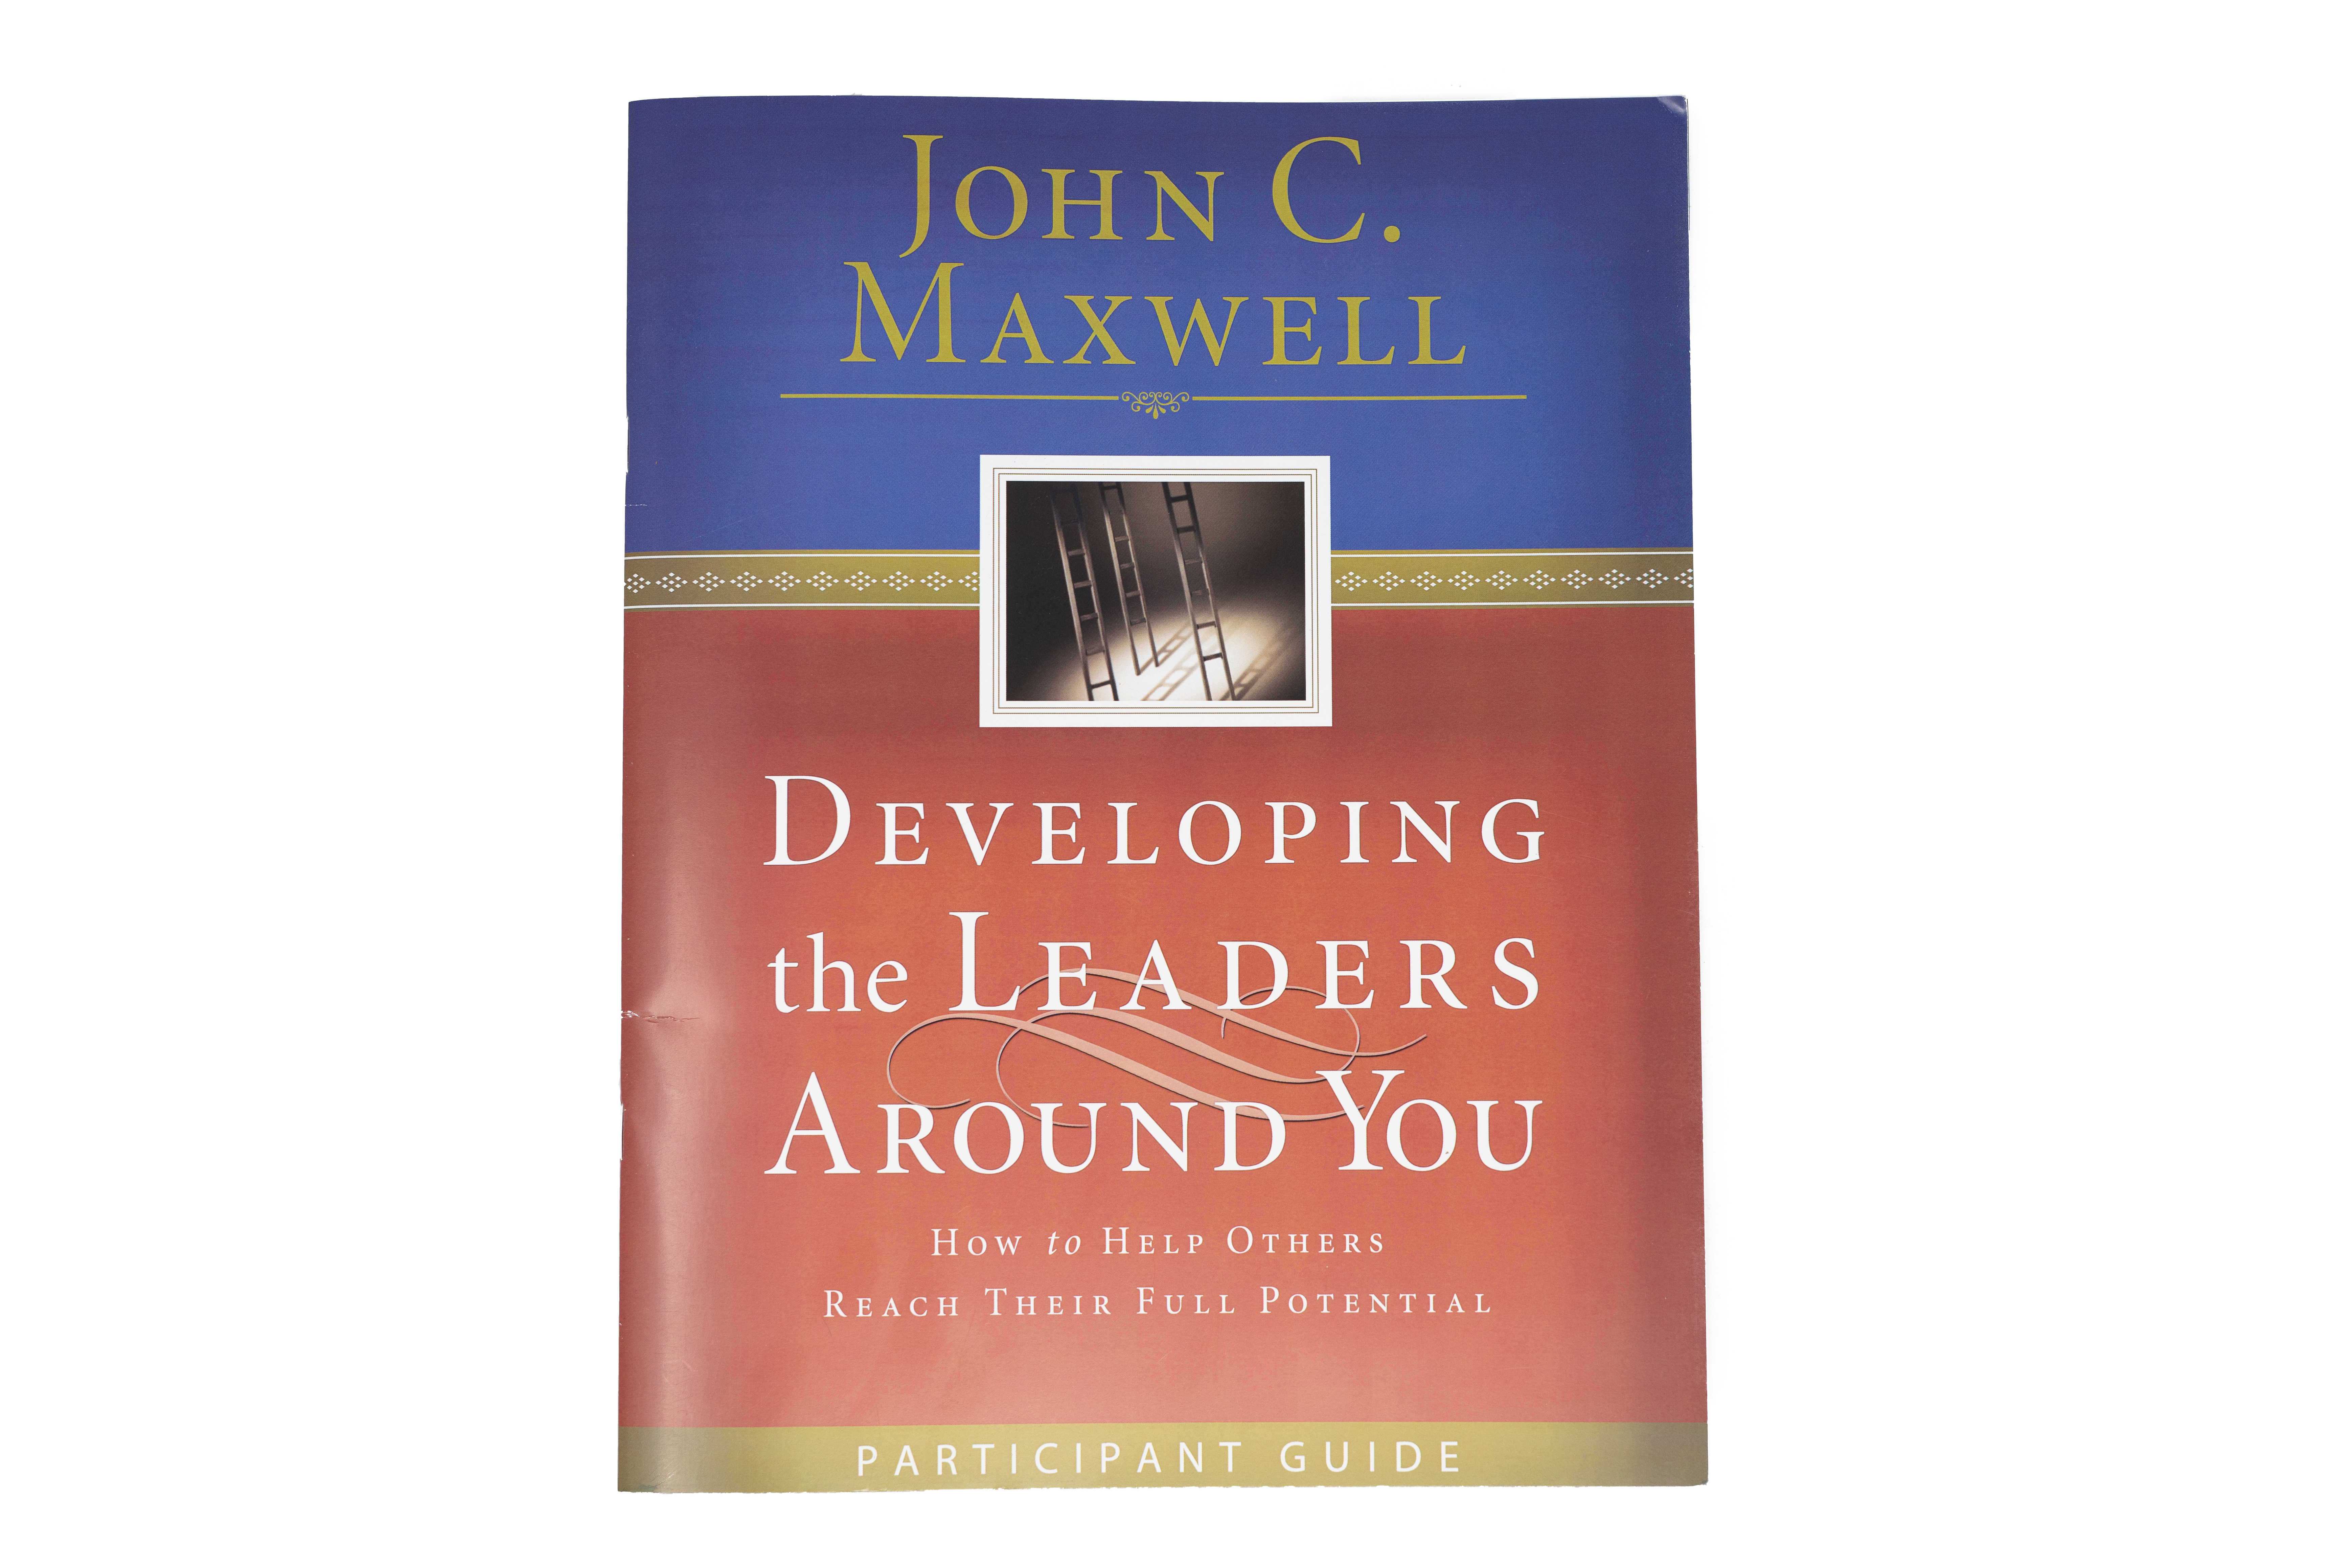 Developing the Leaders Around You Participant Guide